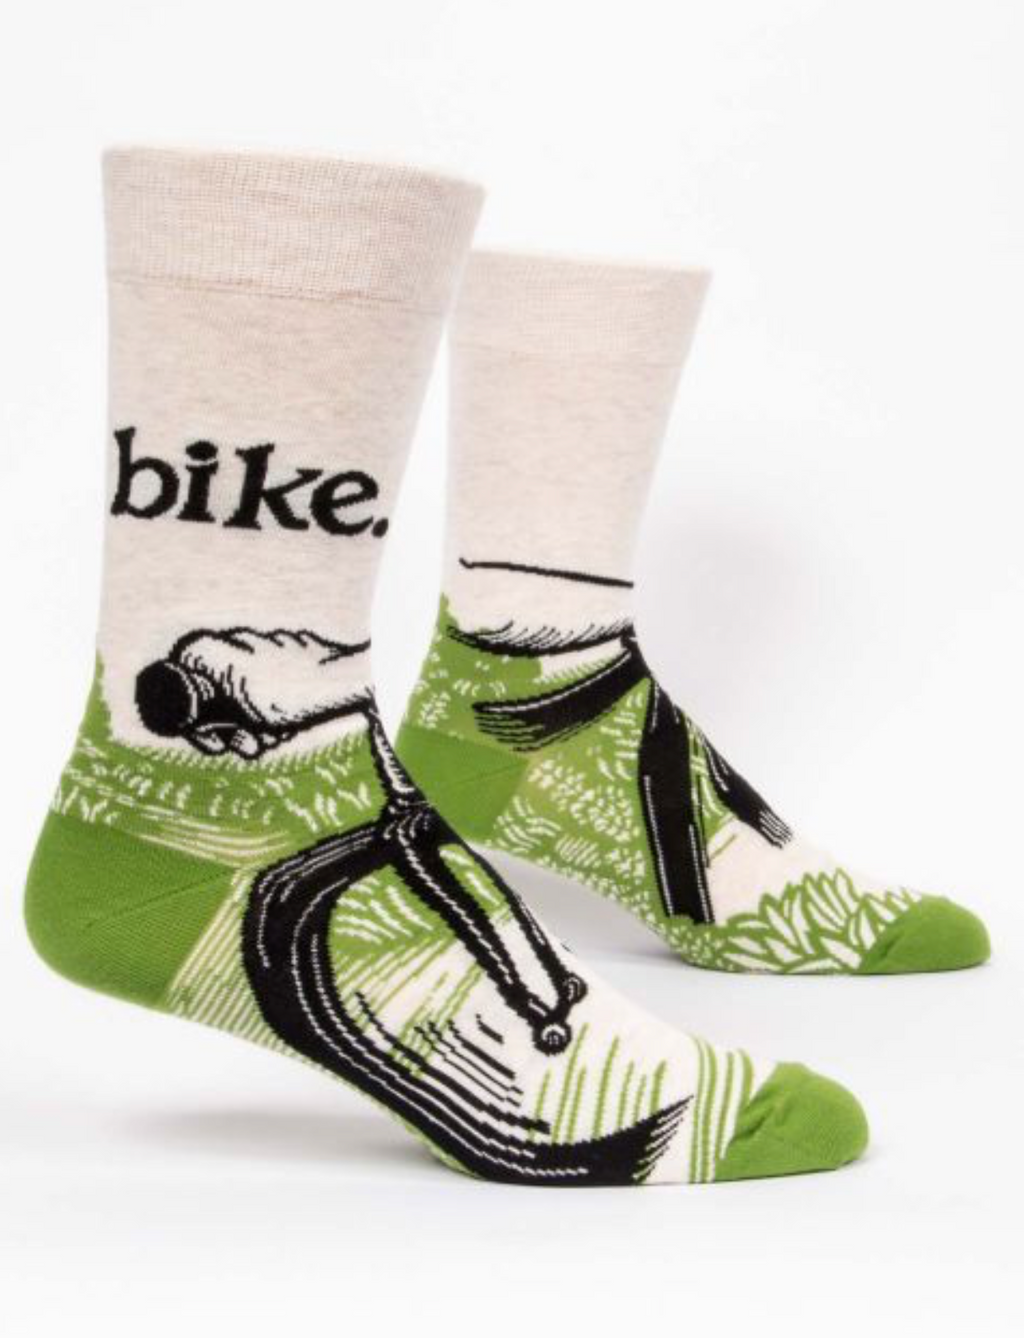 Blue Q Men's Socks- Bike